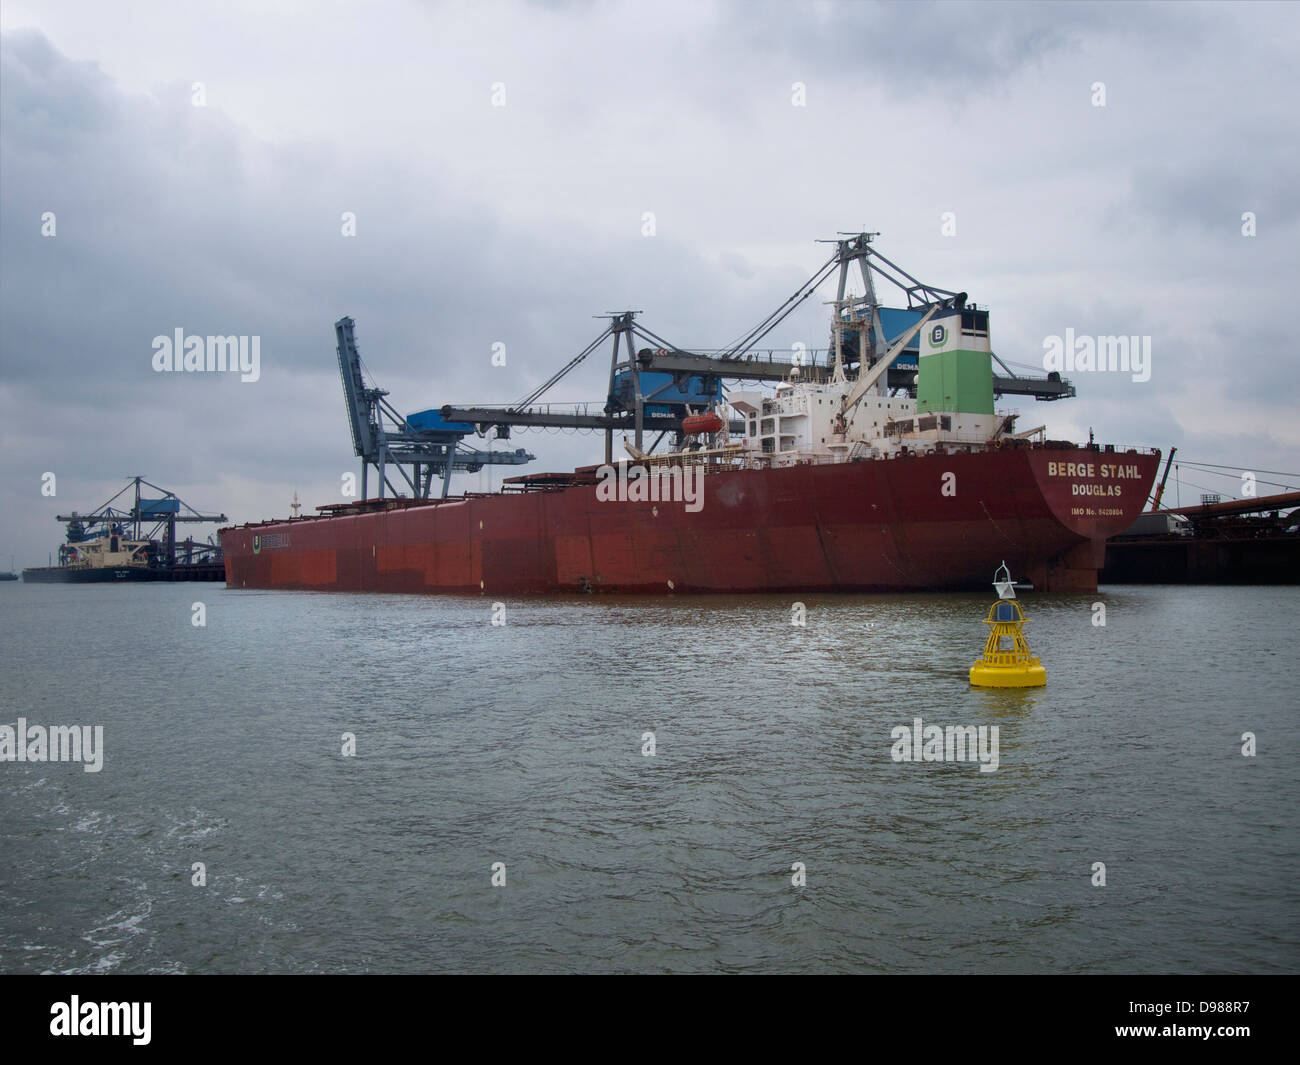 the Berge Stahl bulkcarrier in the port of Rotterdam, the Netherlands. Stock Photo